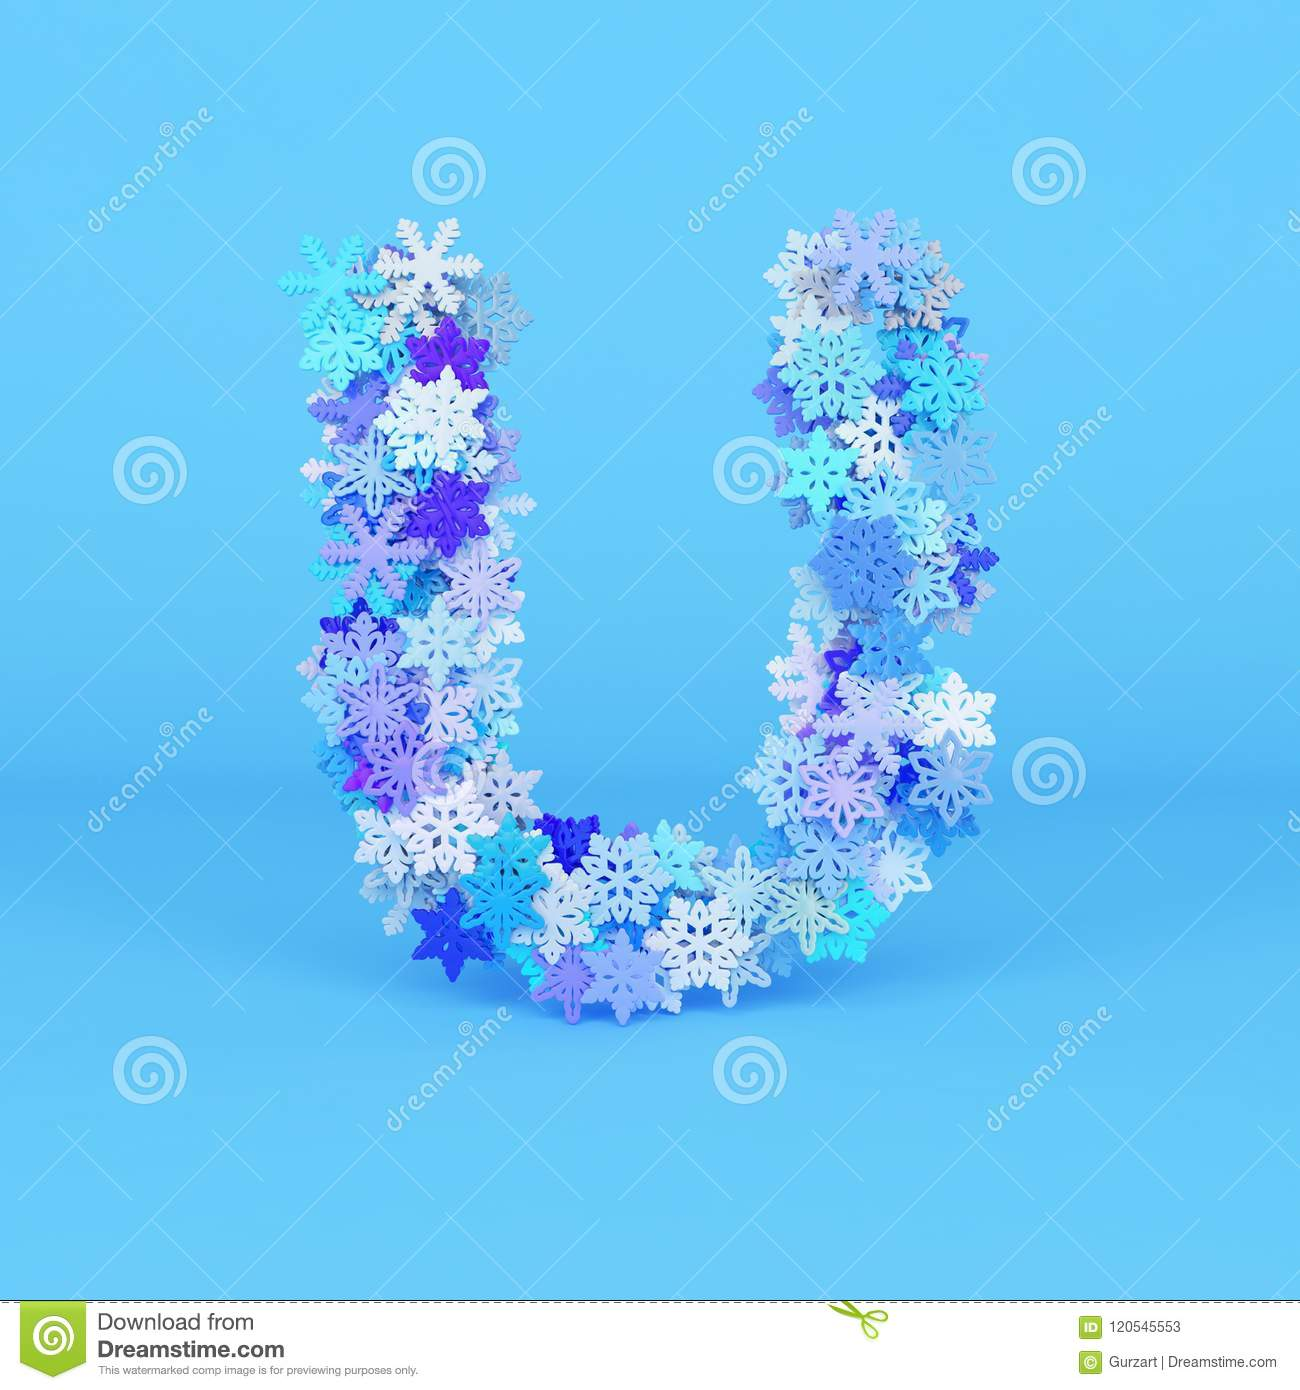 how many letters are in the alphabet winter alphabet letter s stock illustrations 3 591 3591